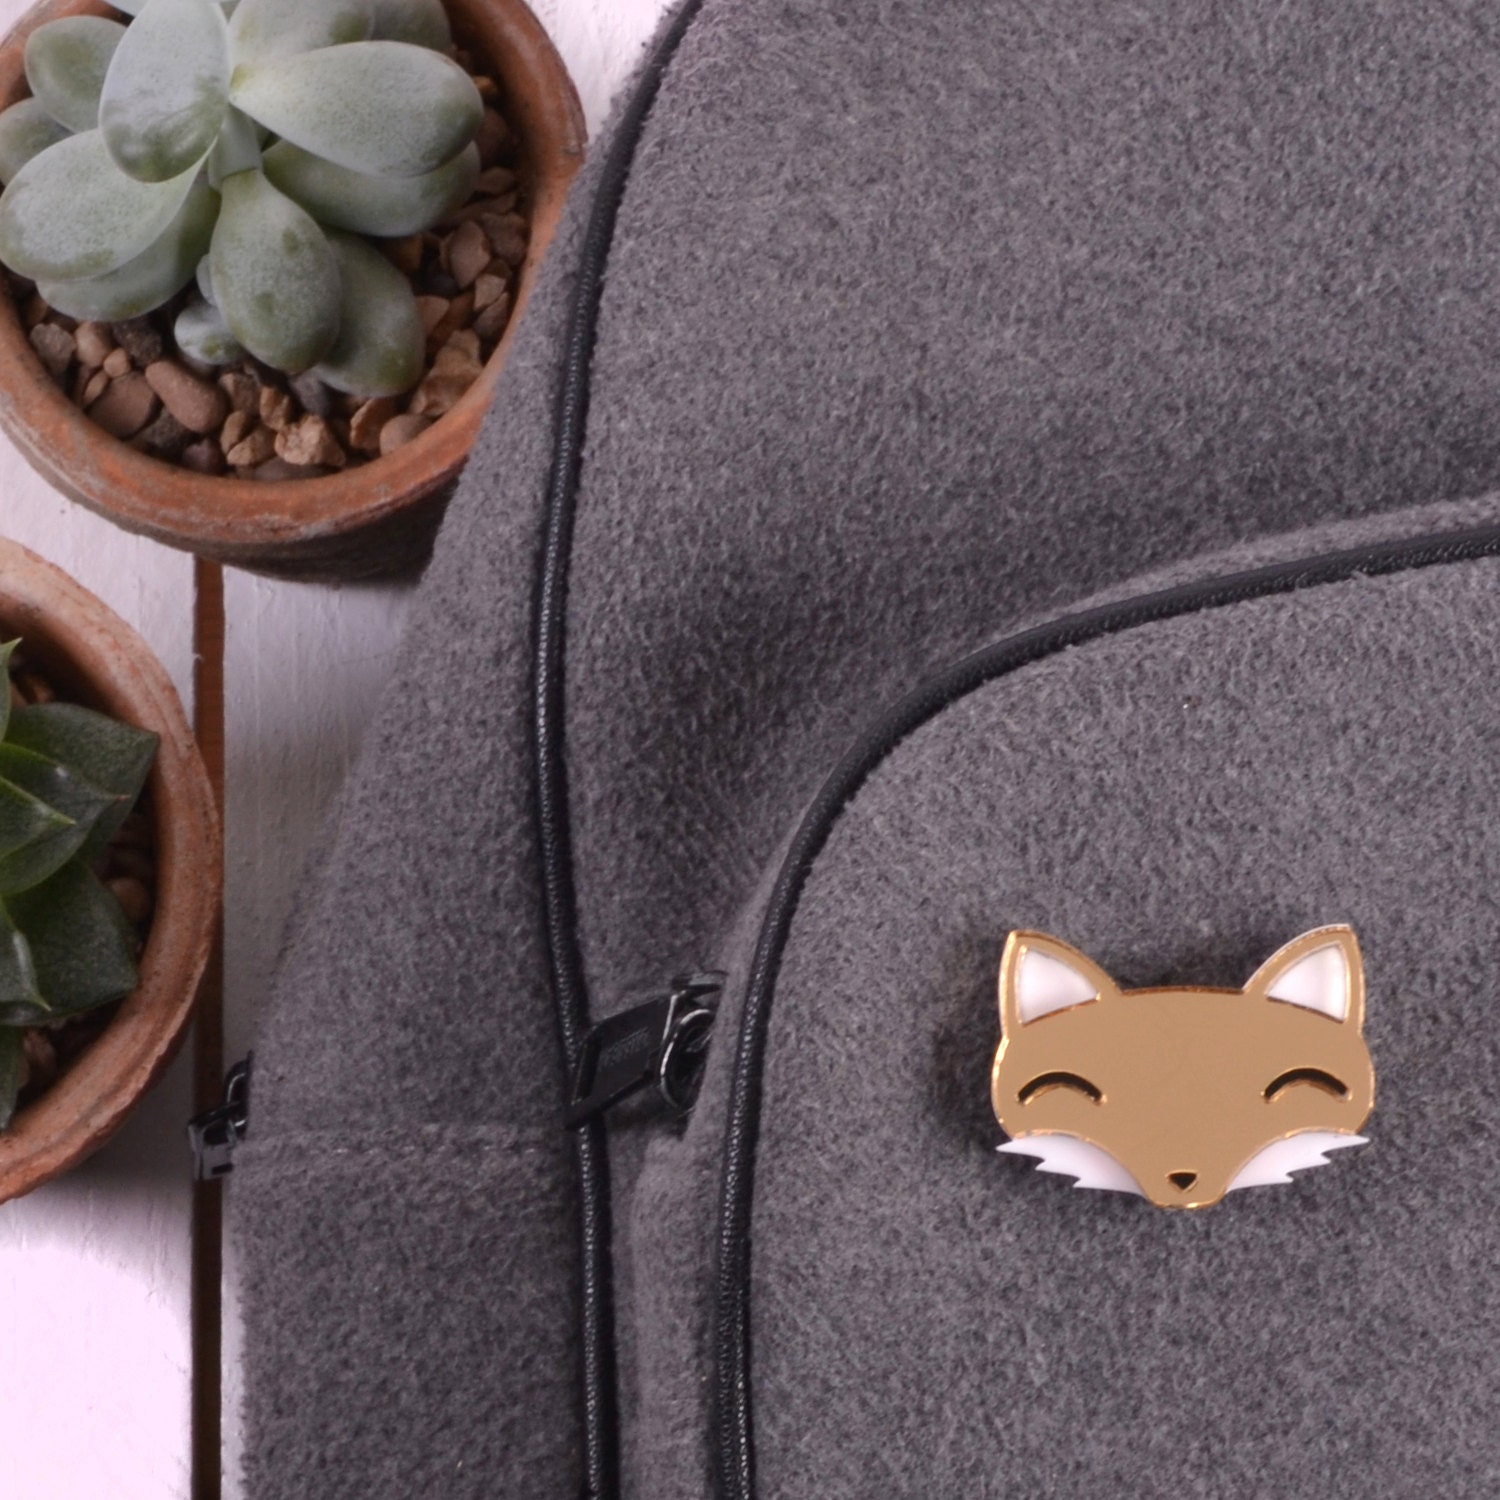 Fox Brooch  Fox Jewellery  Fox Gifts  Fox Lover Gift  Gold Fox  Animal Statement Jewelry  Acrylic Pin Badge  Gifts For Her